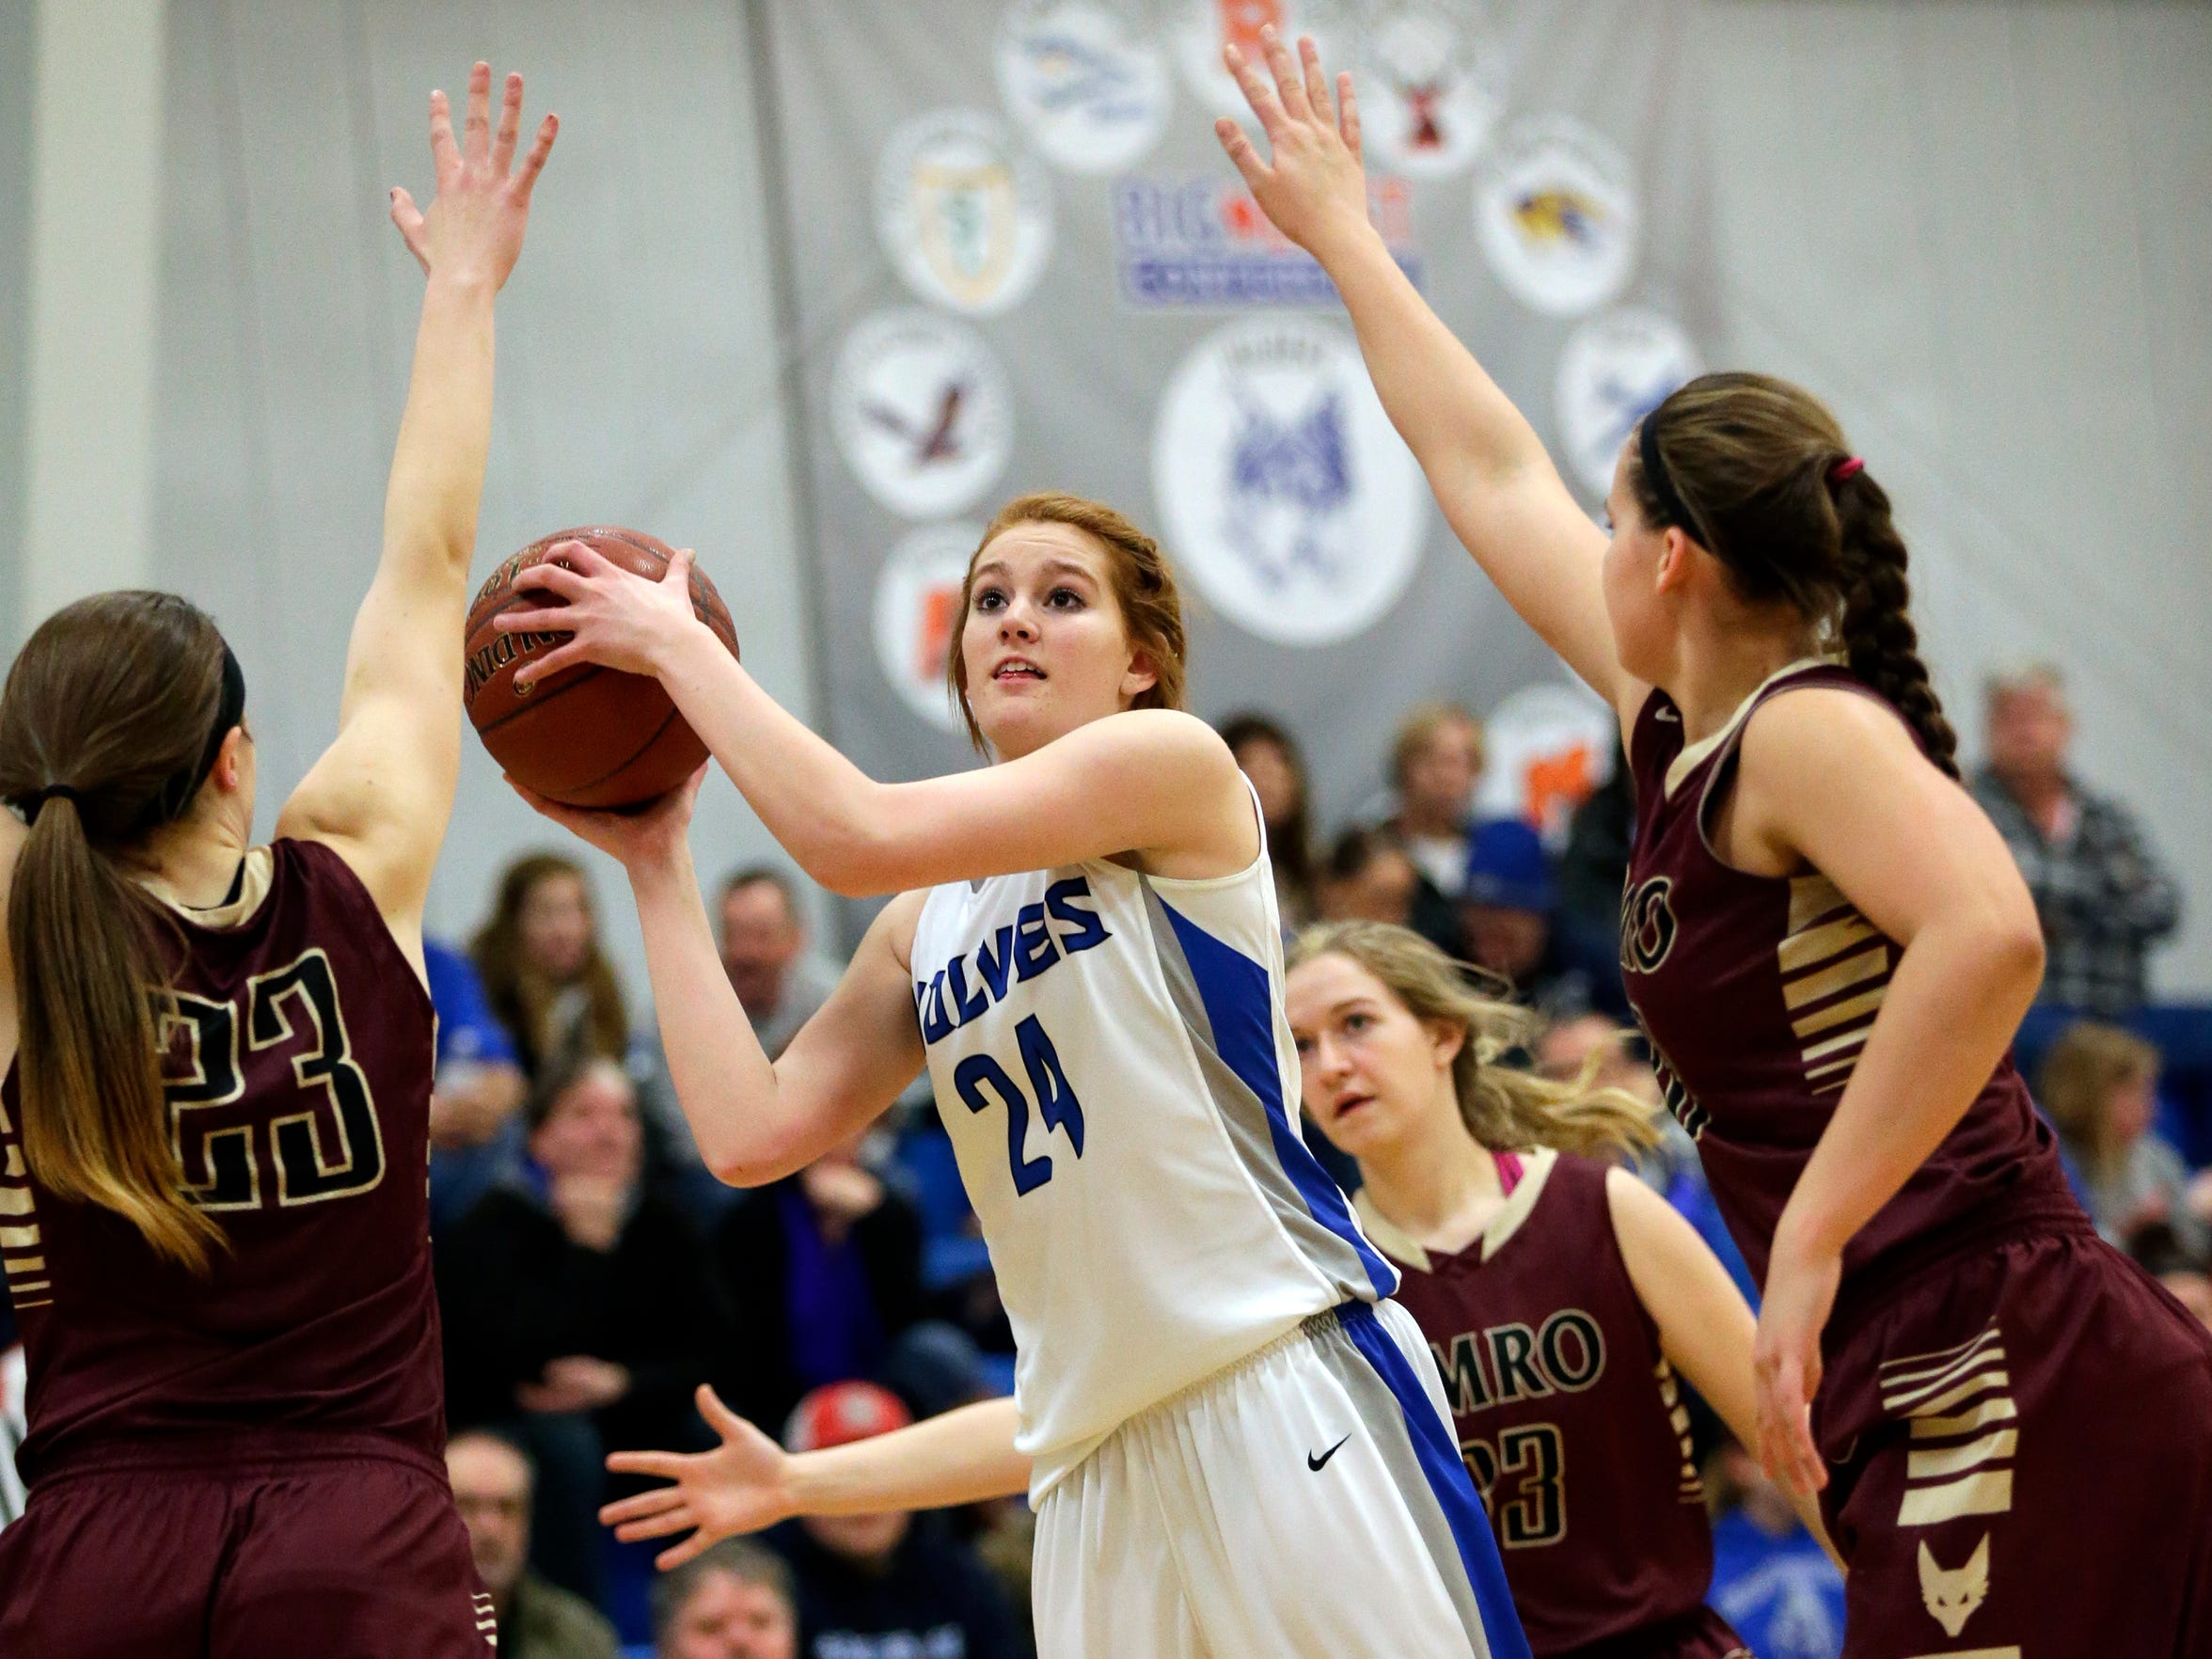 Hilbert High School's April Gehl (24) returned to the court for second half against Omro High School following a 4-1/2 game suspension Monday, January 25, 2016, in Hilbert, Wisconsin.